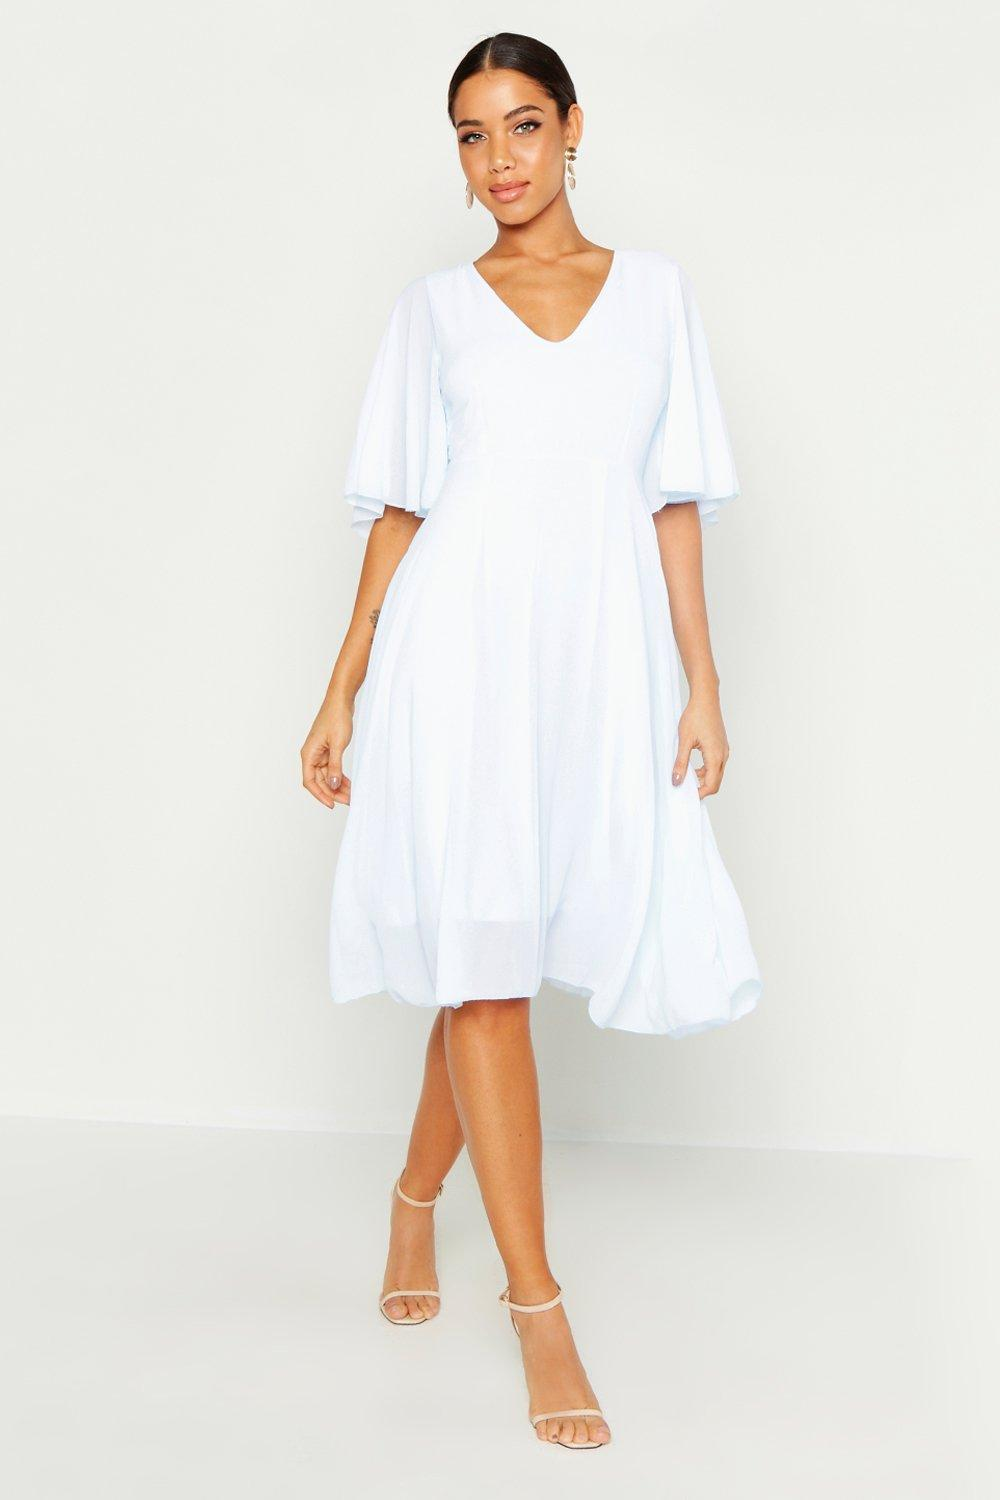 Old Fashioned Dresses | Old Dress Styles Womens Cape Detail Chiffon Midi Dress - blue - 10 $62.00 AT vintagedancer.com